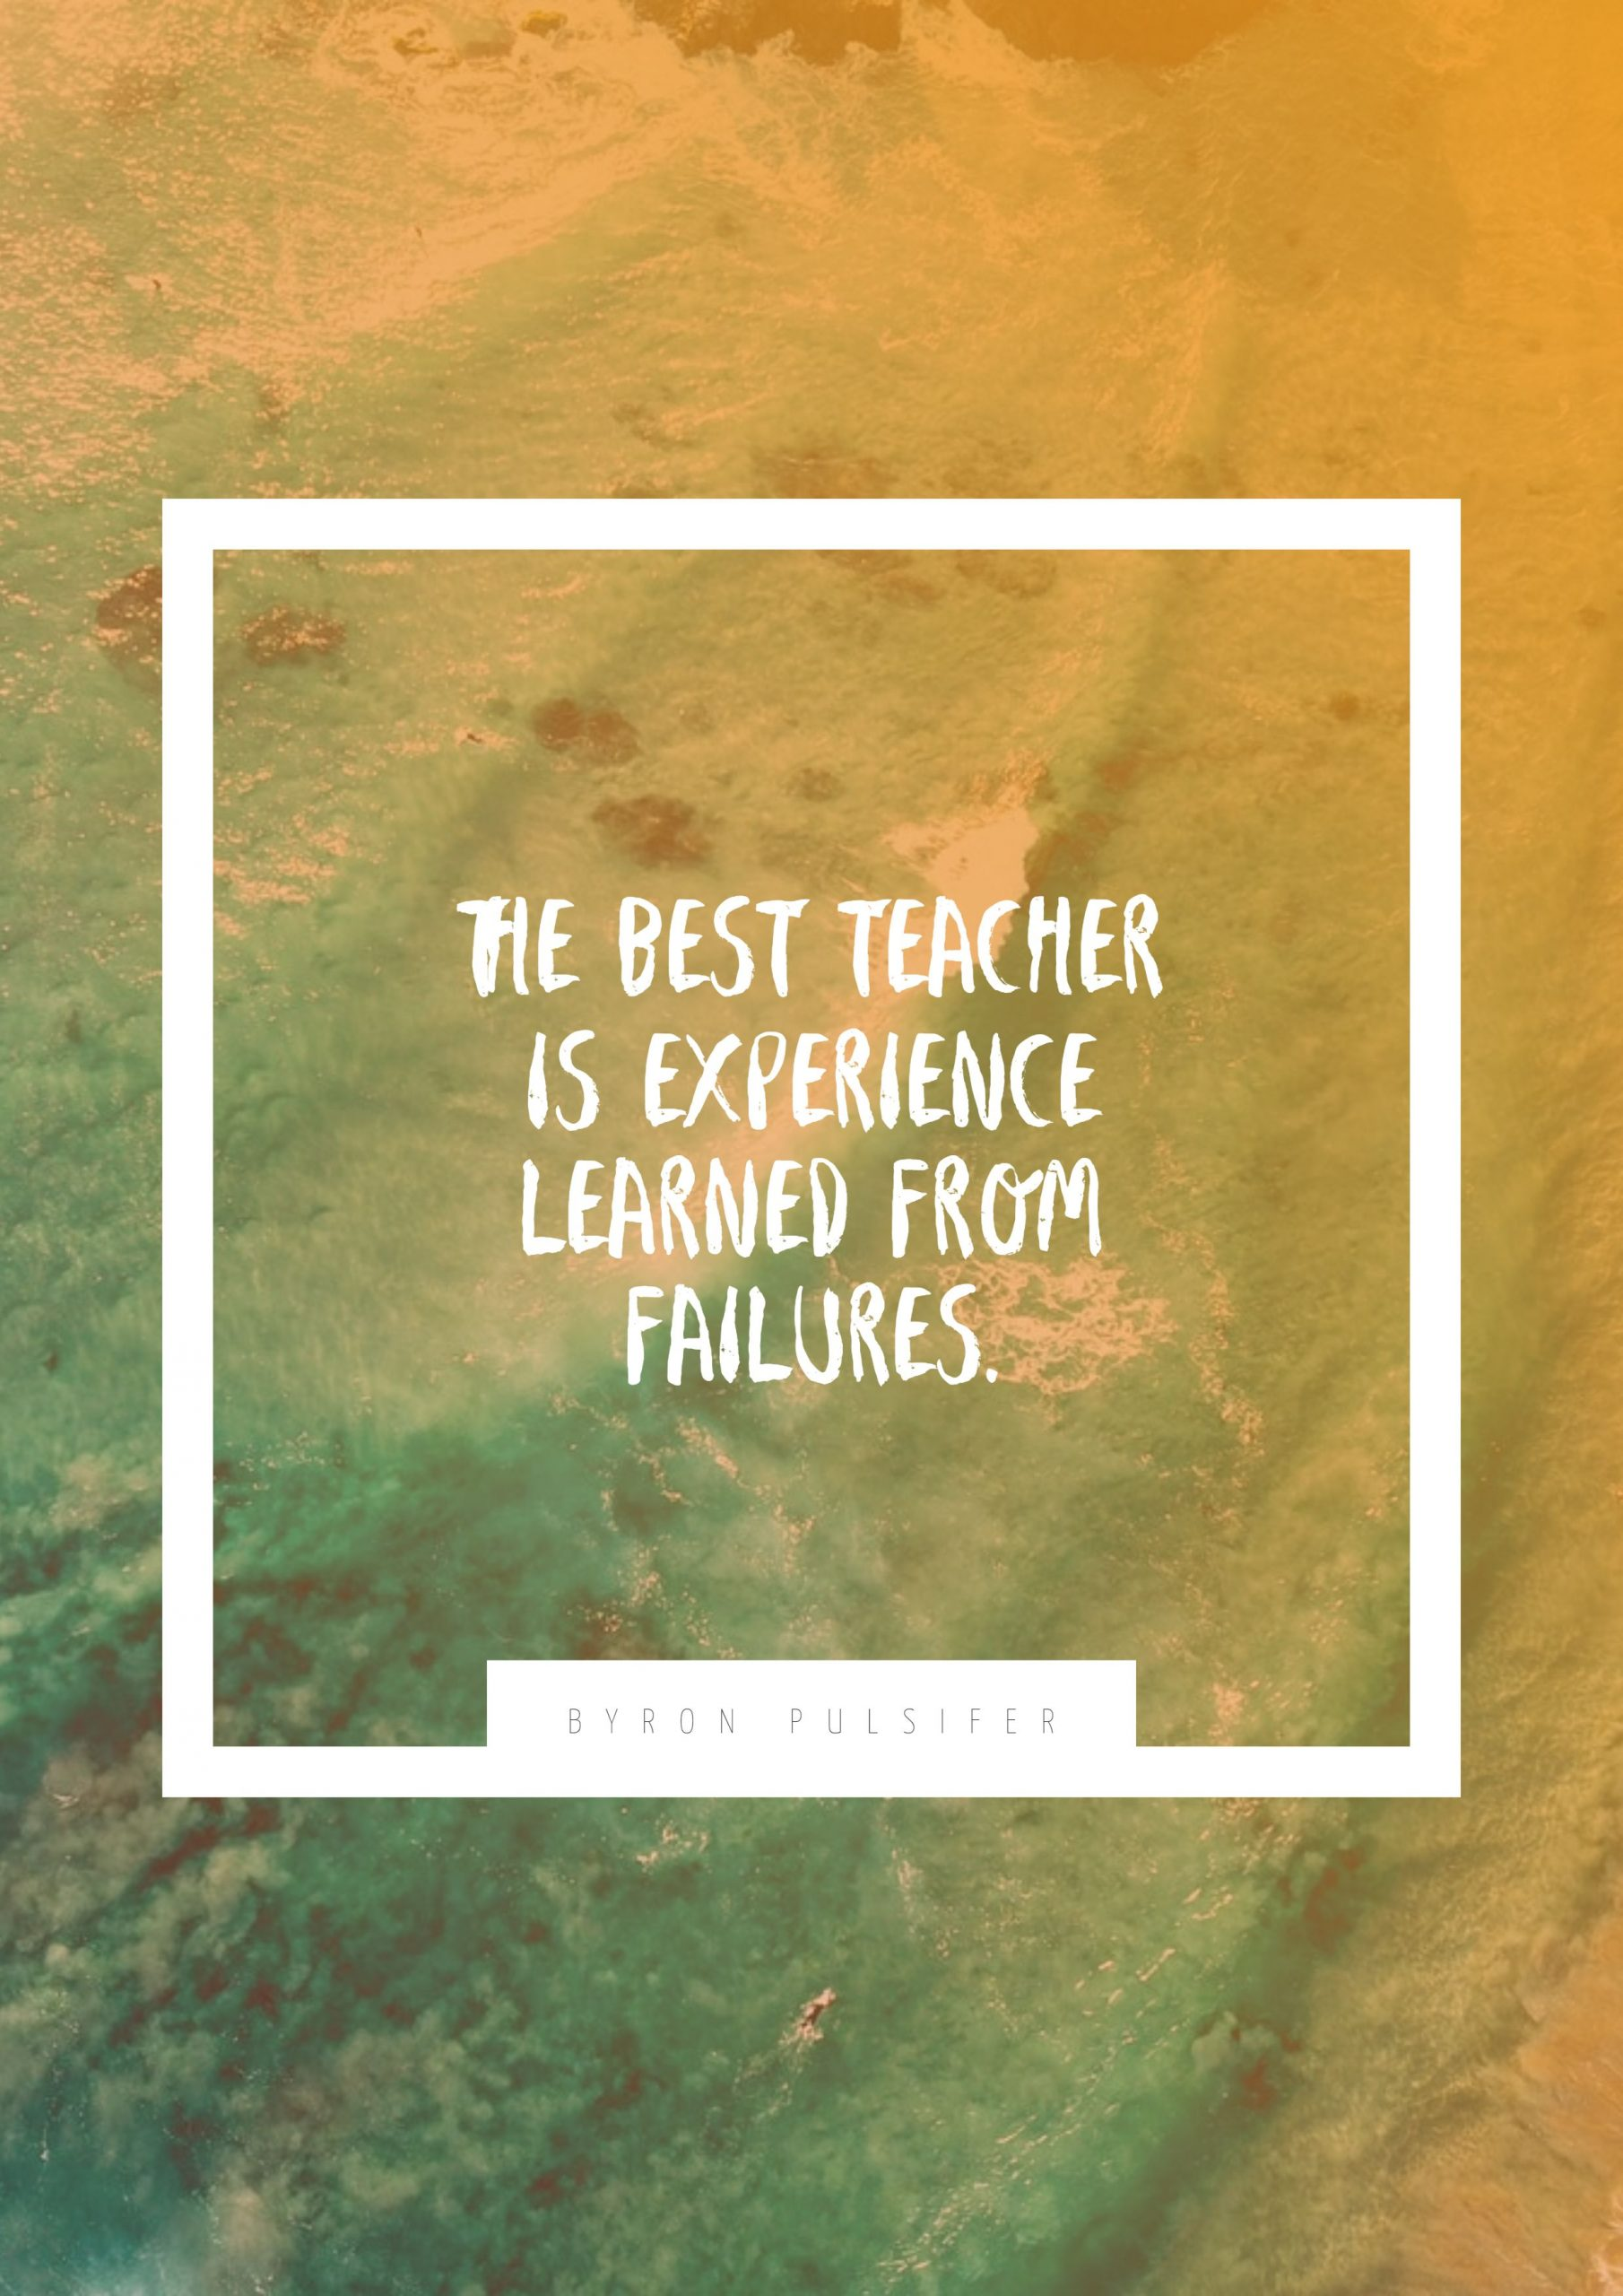 Quotes image of The best teacher is experience learned from failures.